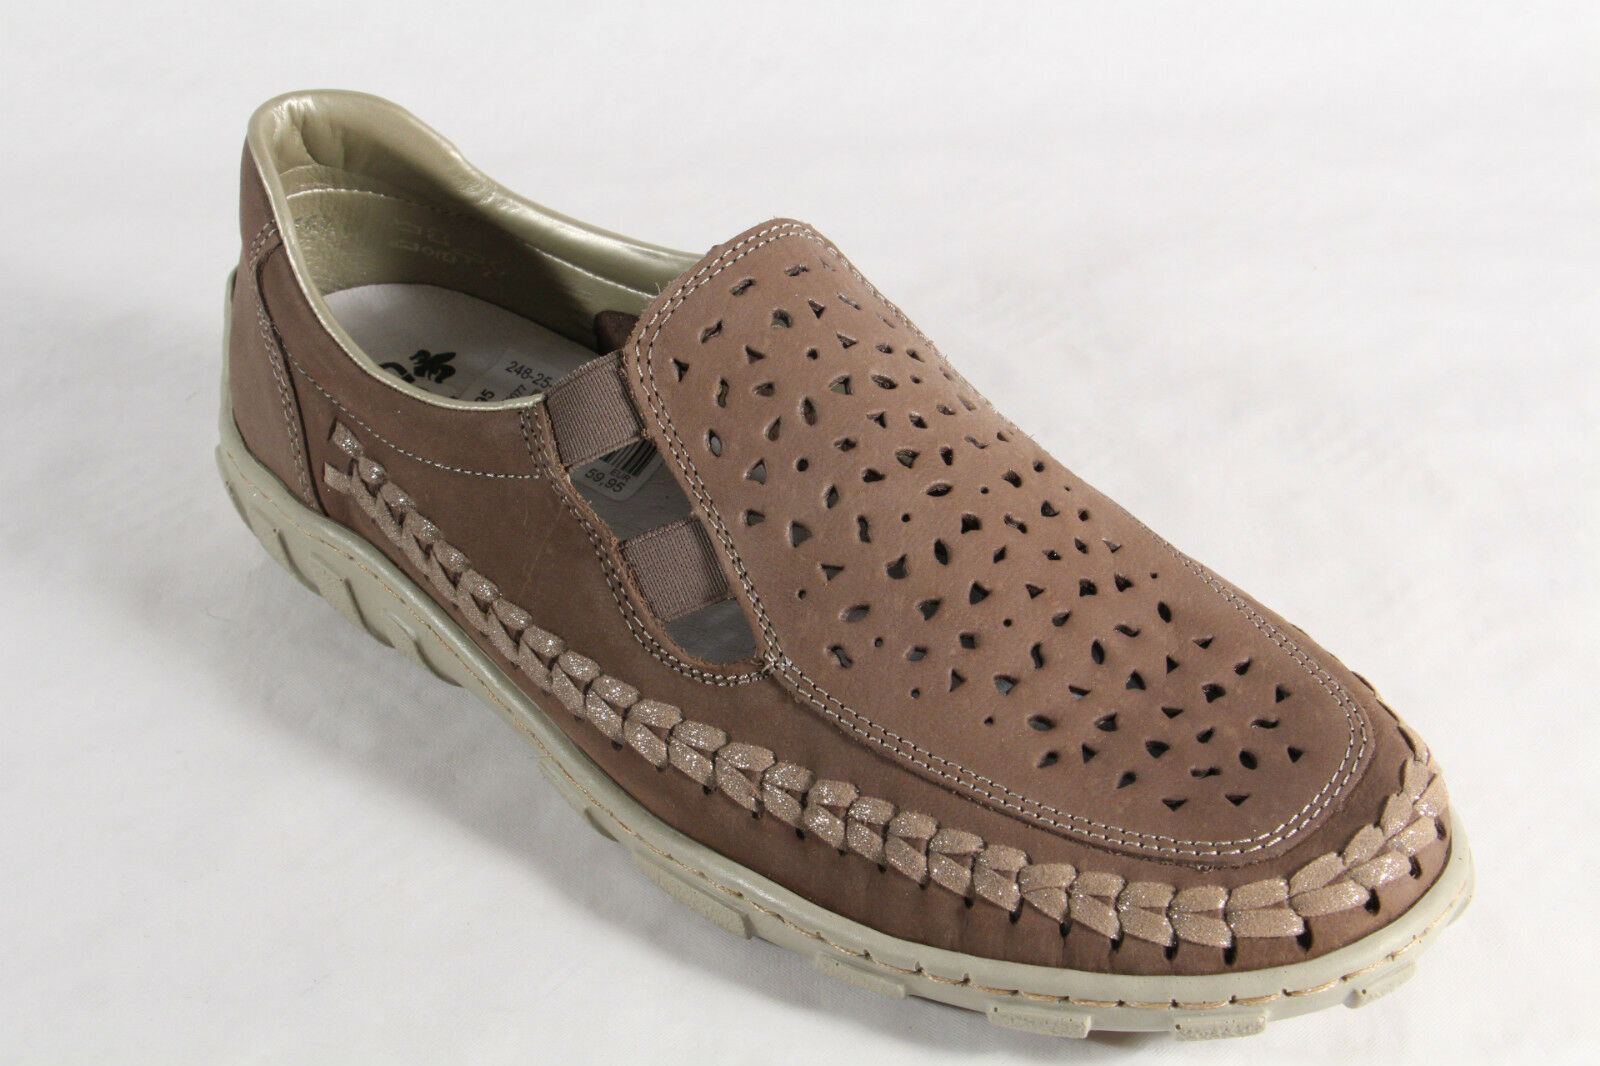 Rieker Slippers Ballerinas Low shoes Court shoes Soft Soft Soft Leather Insole Brown NEW 430808